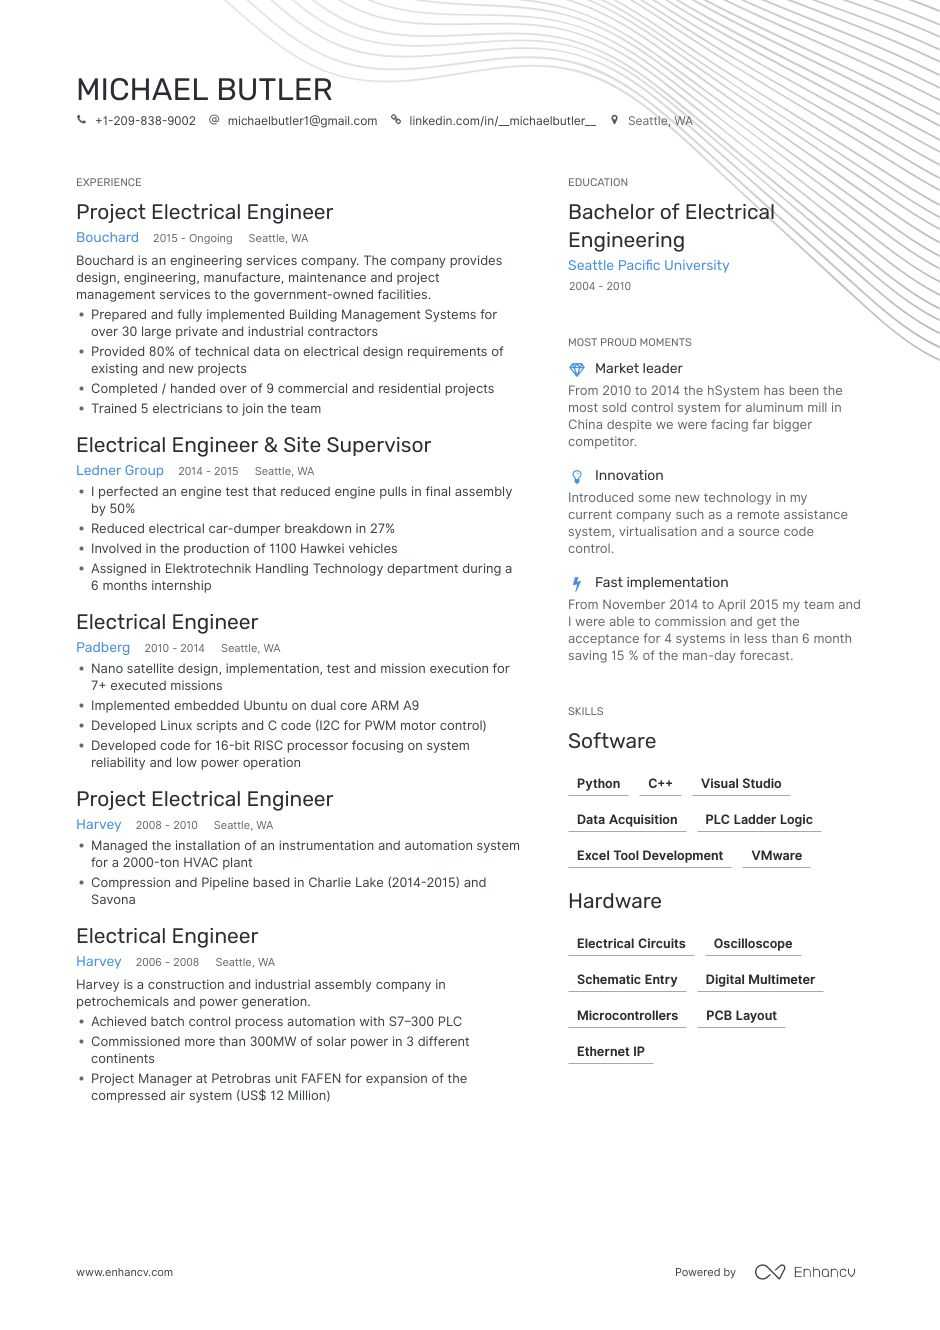 electrical engineer resume examples pro tips featured enhancv of solar engineering eric Resume Resume Of Solar Engineer